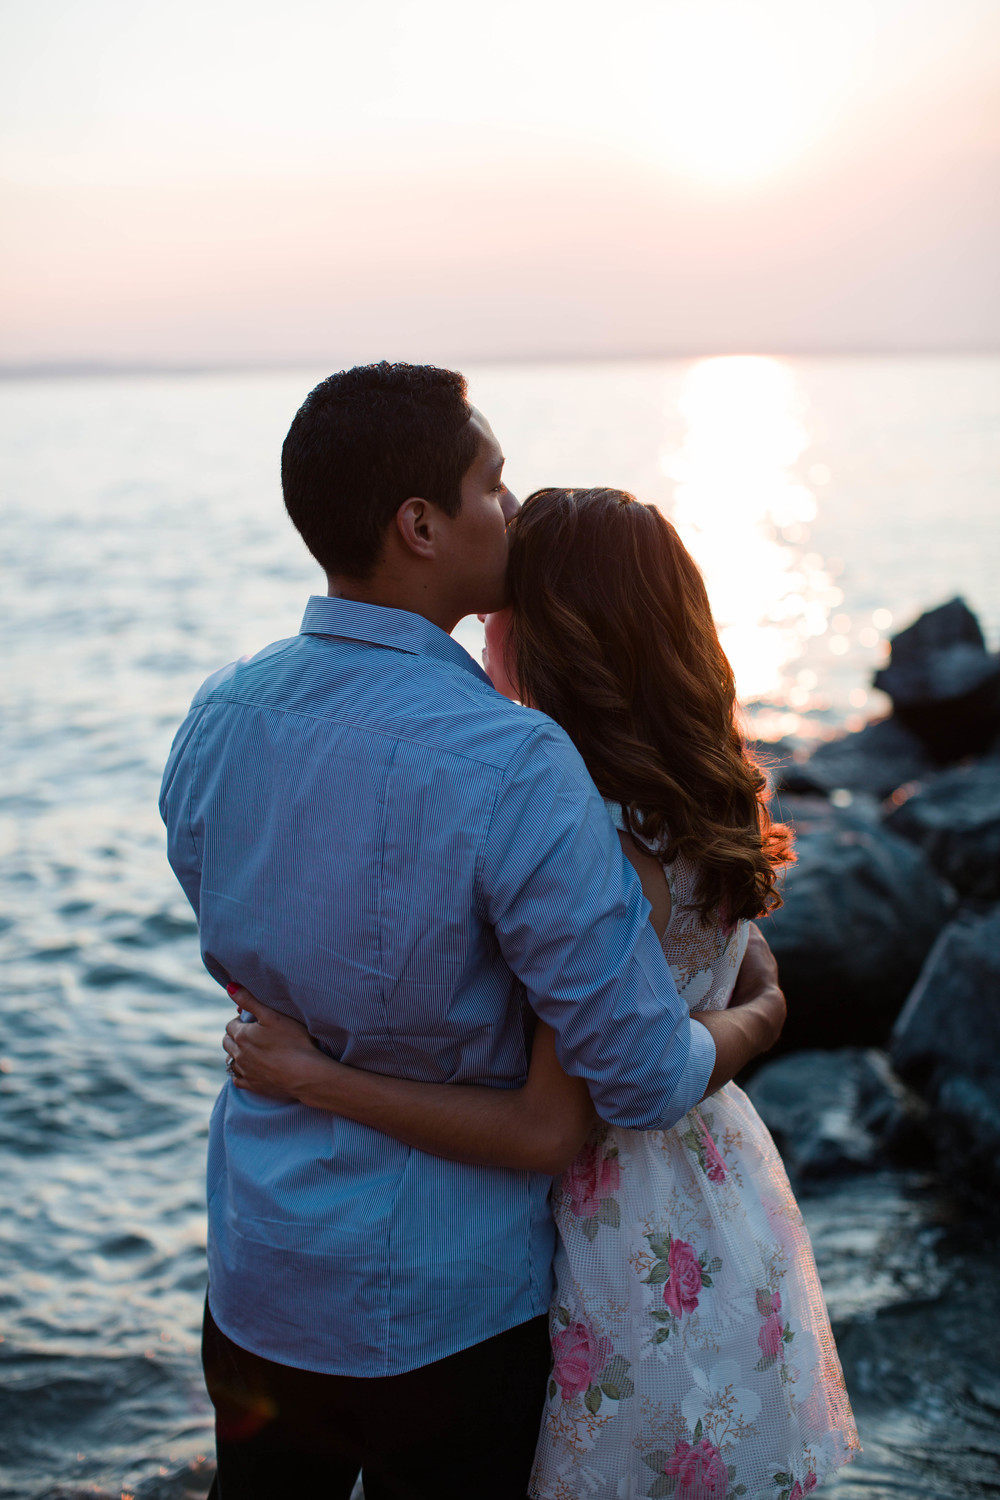 Cruz+Robert ©2015AdinaPrestonPhotography-Seattle+Photographer+Engagement-Weddings-31.jpg